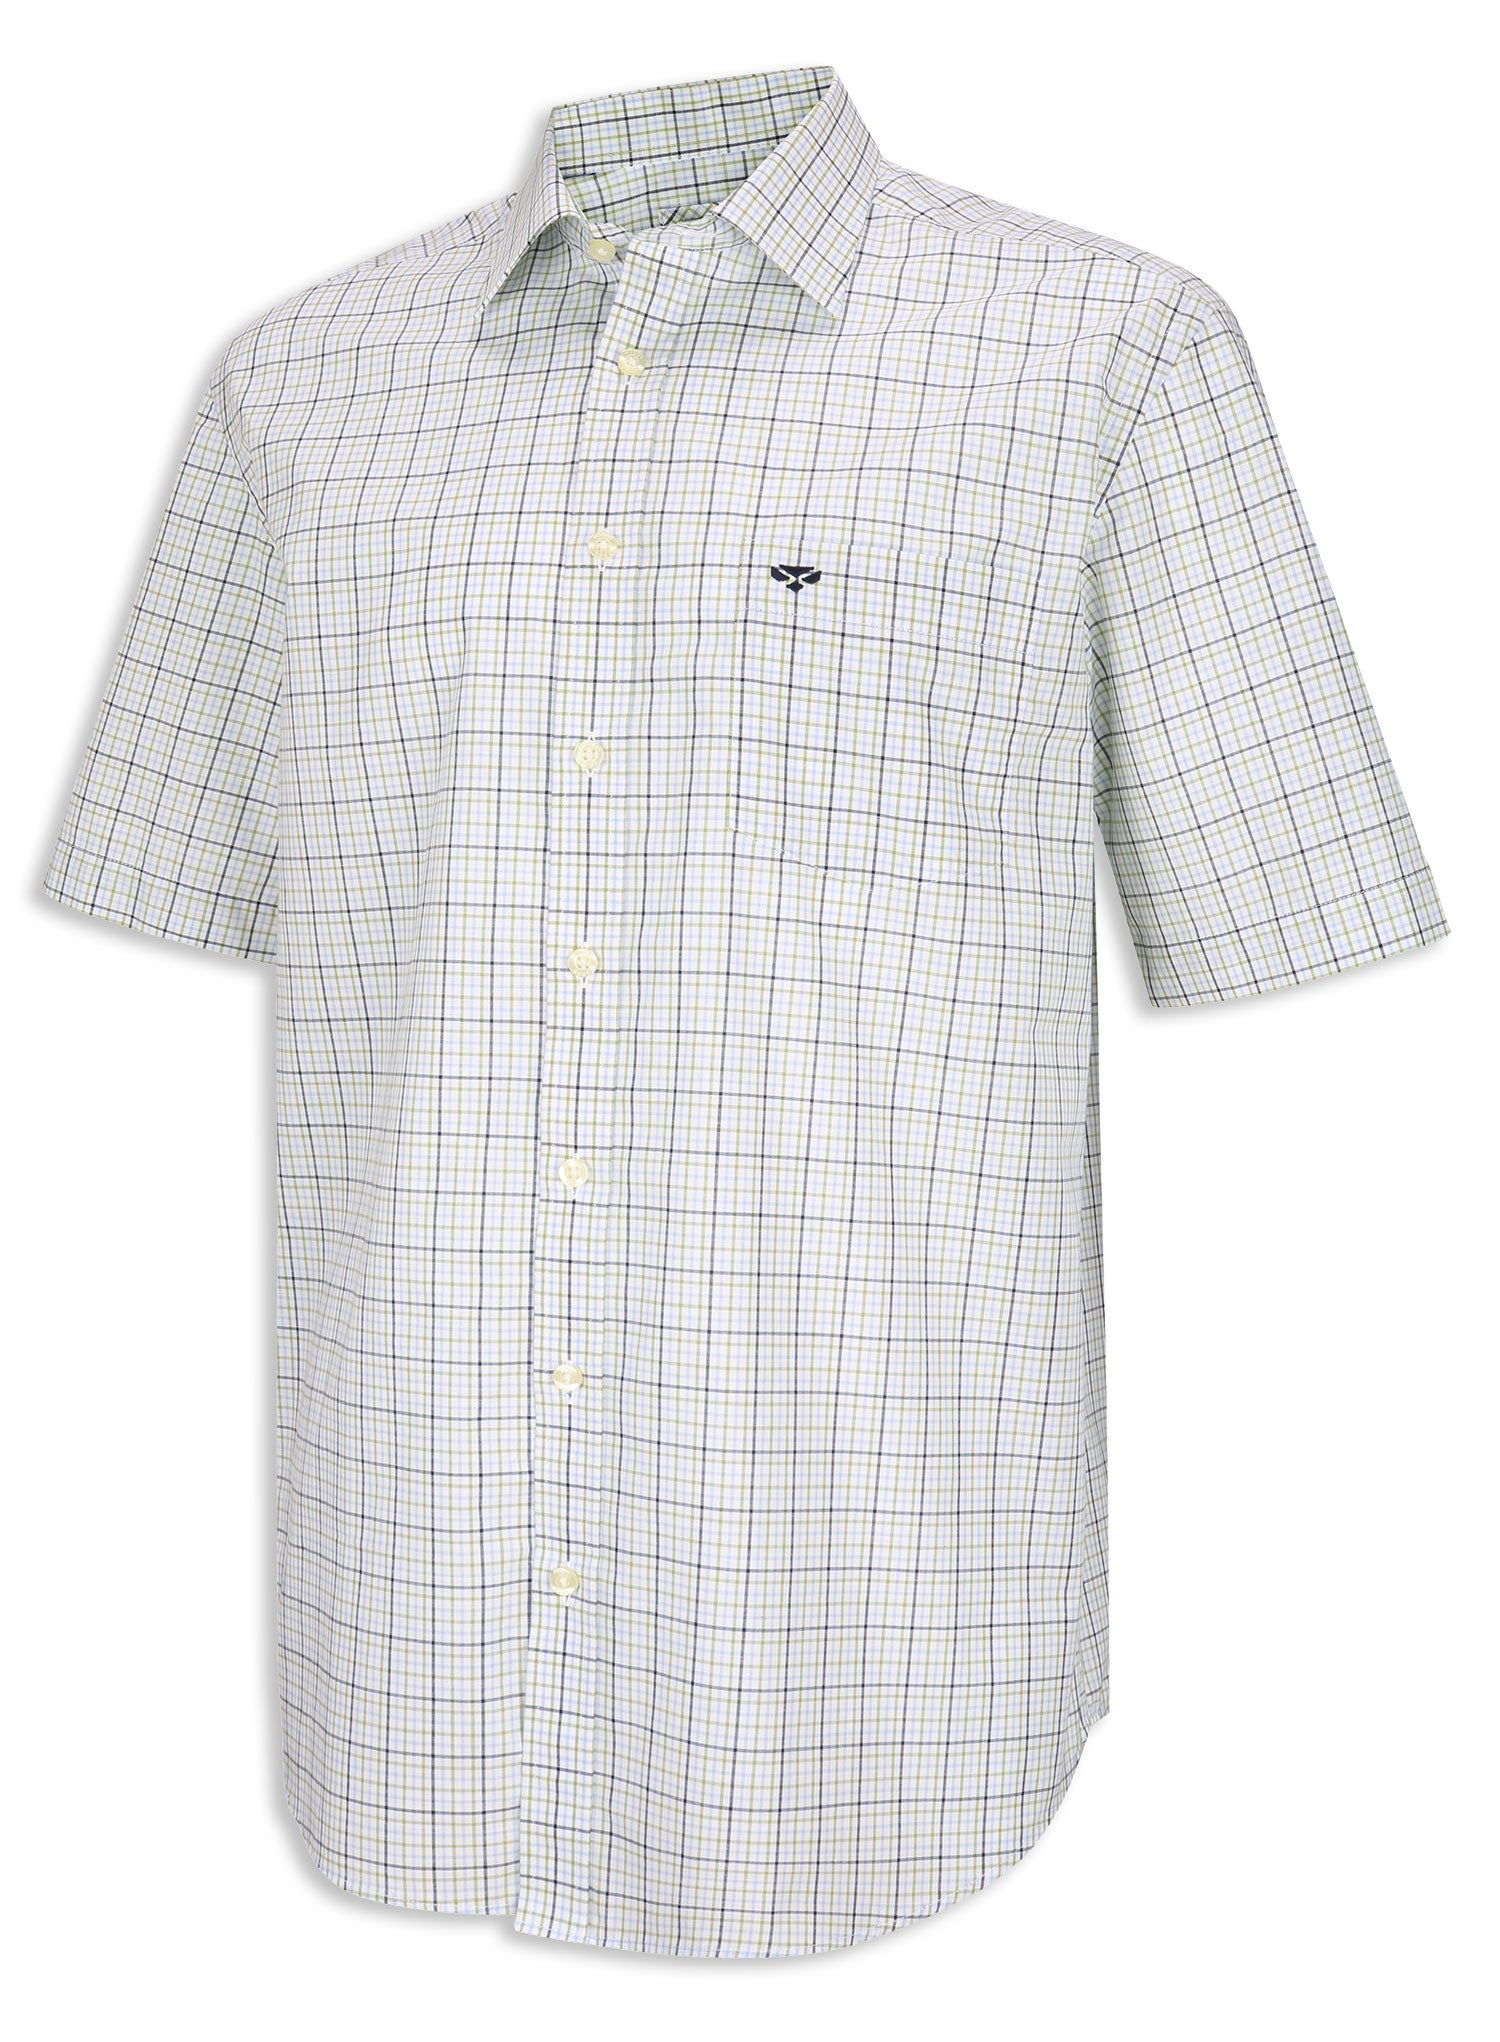 Blue and Green Hoggs of Fife Muirfield Short Sleeve Shirt